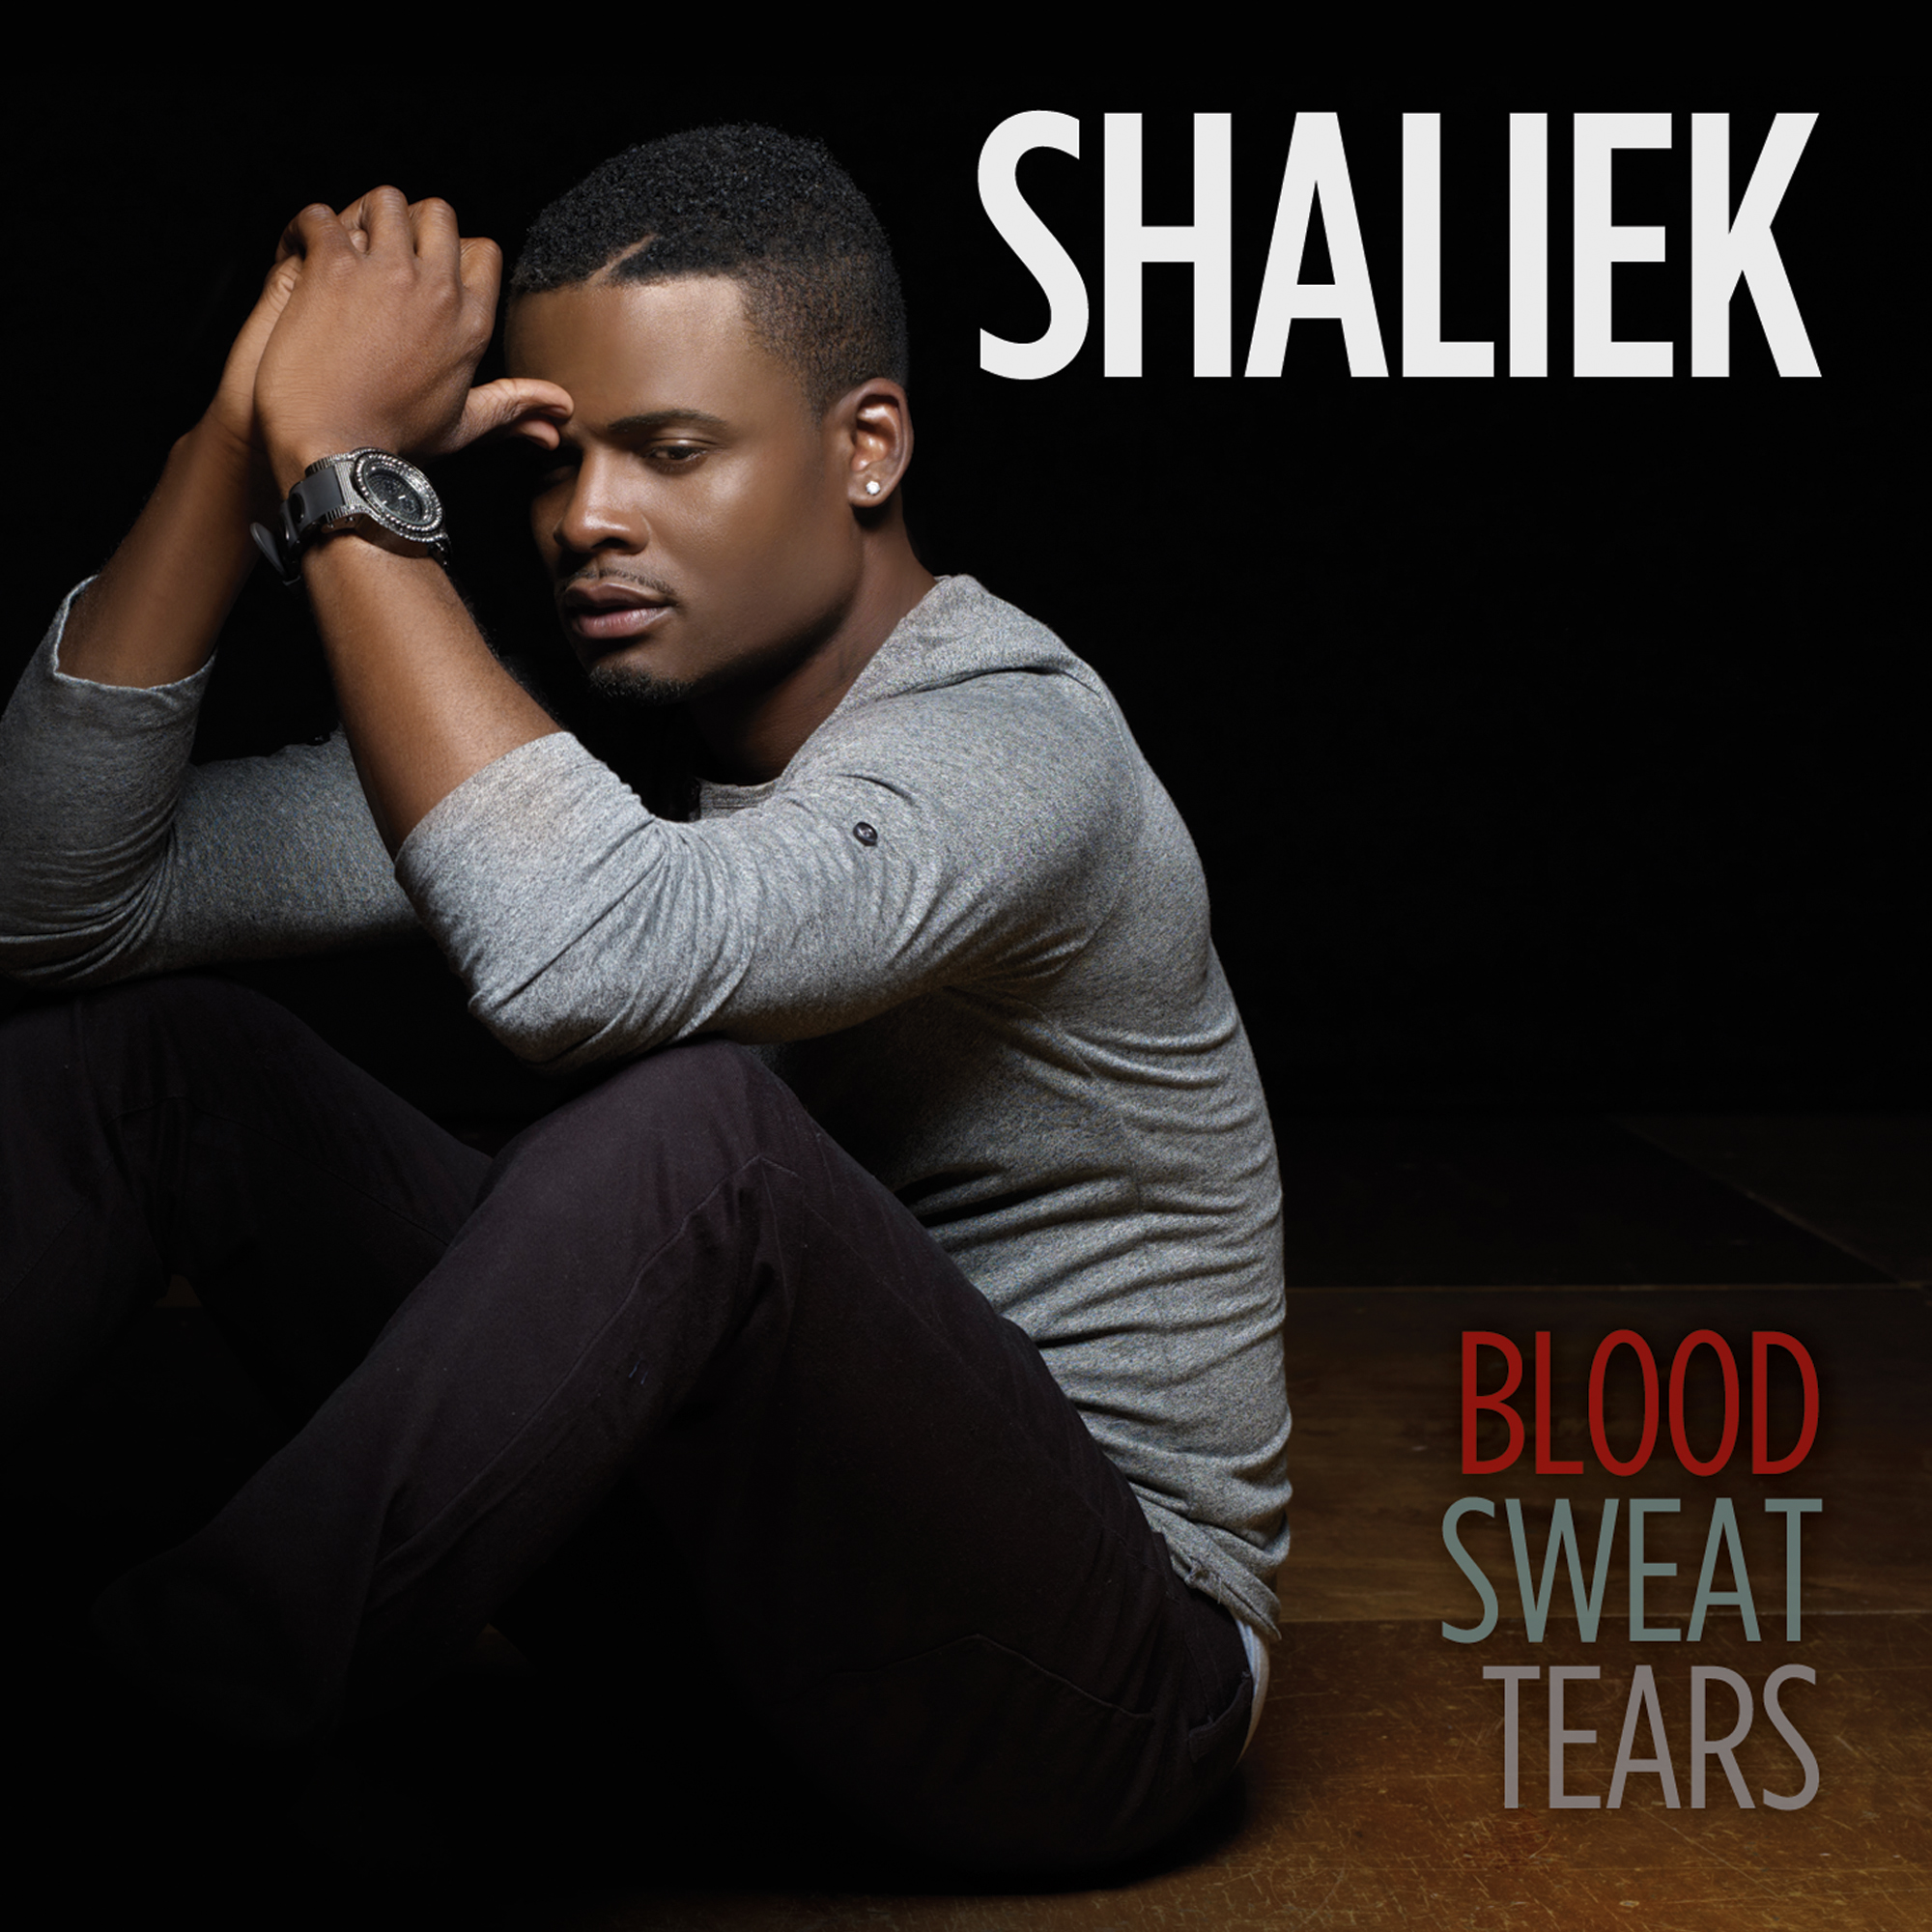 blood sweat tears Album Review: Shaliek Blood Sweat Tears